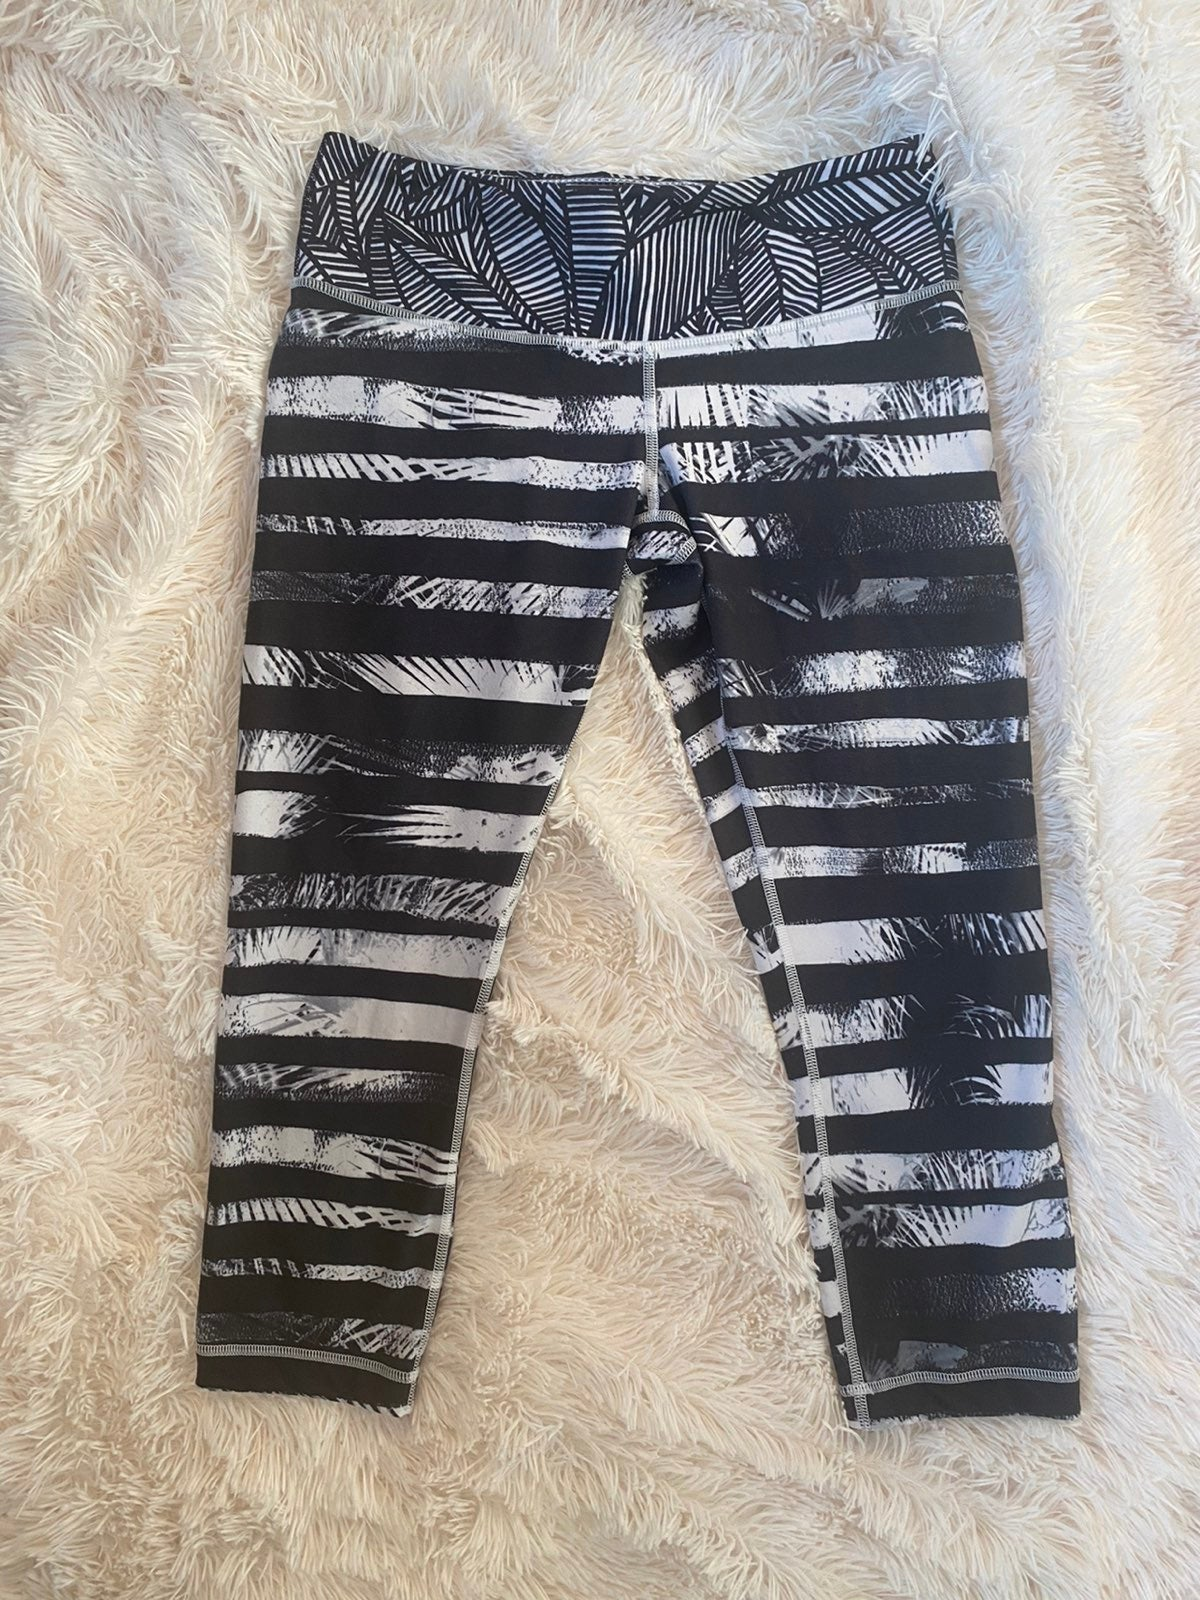 lululemon leggings size 8